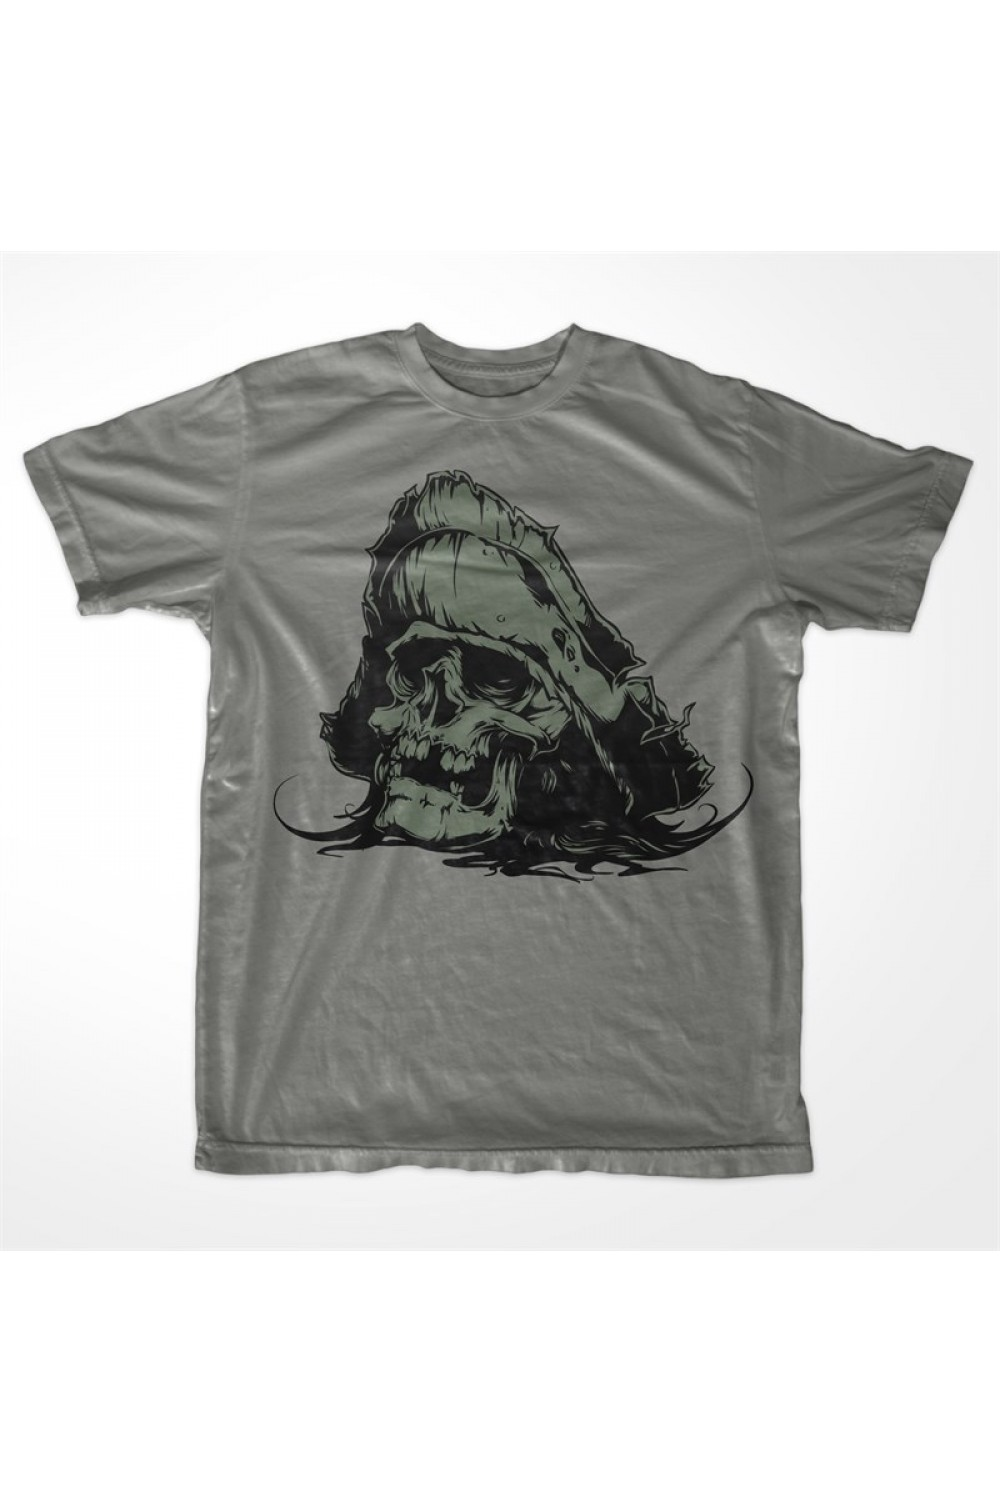 Pirate Skull Men Printed T shirt 4004